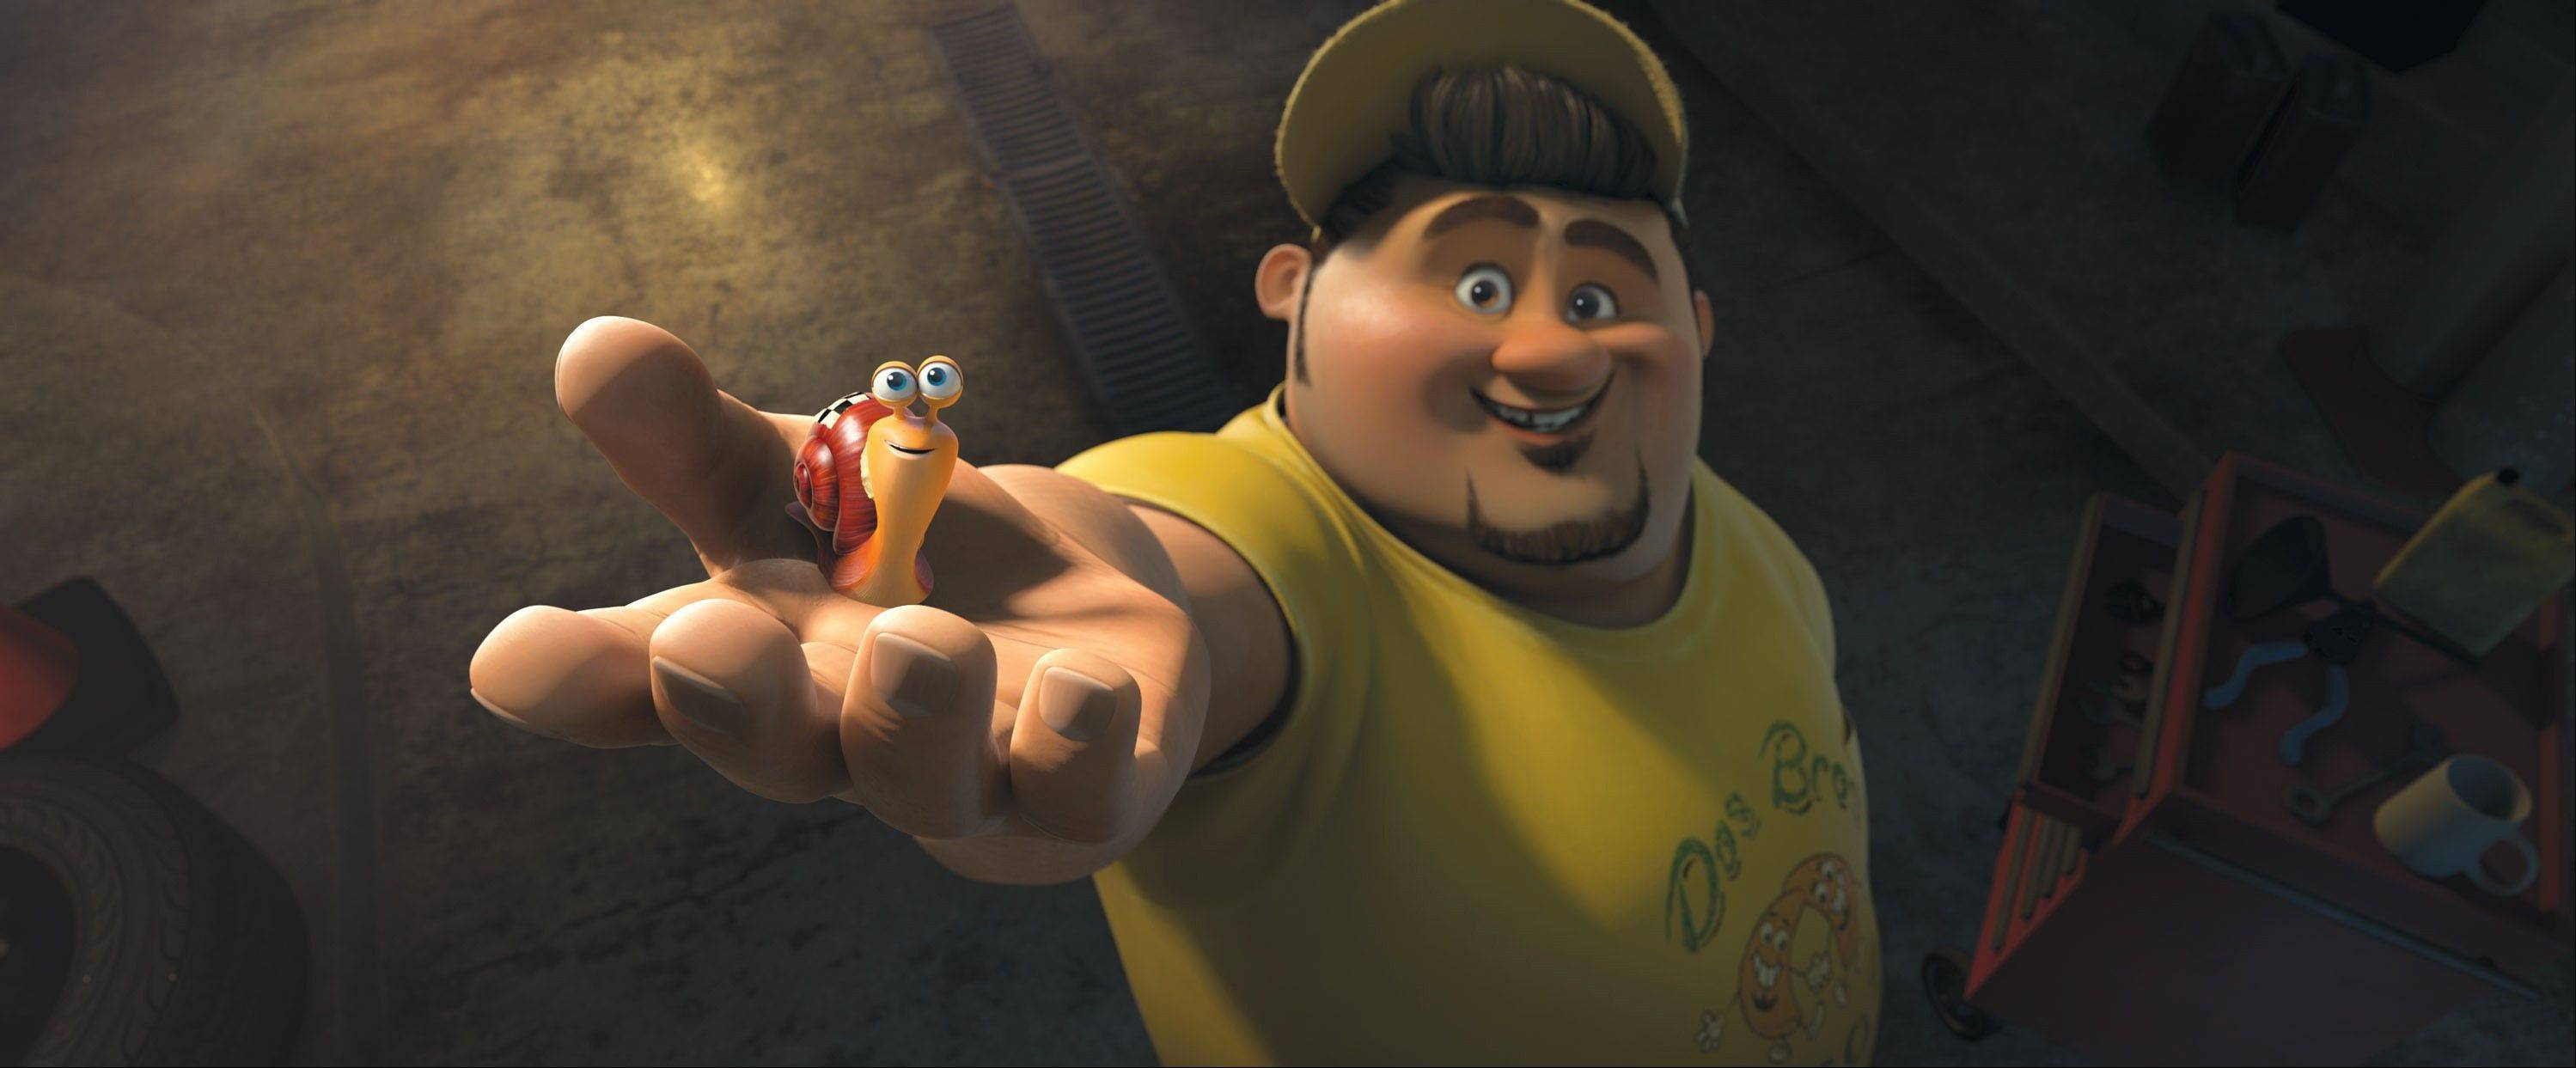 "This film publicity image released by DreamWorks Animation shows Turbo, voiced by Ryan Reynolds, left, and Tito, voiced by Michael Pena, in a scene from the animated movie ""Turbo,"" about an underdog snail whose dreams kick into overdrive when he miraculously attains the power of super-speed."